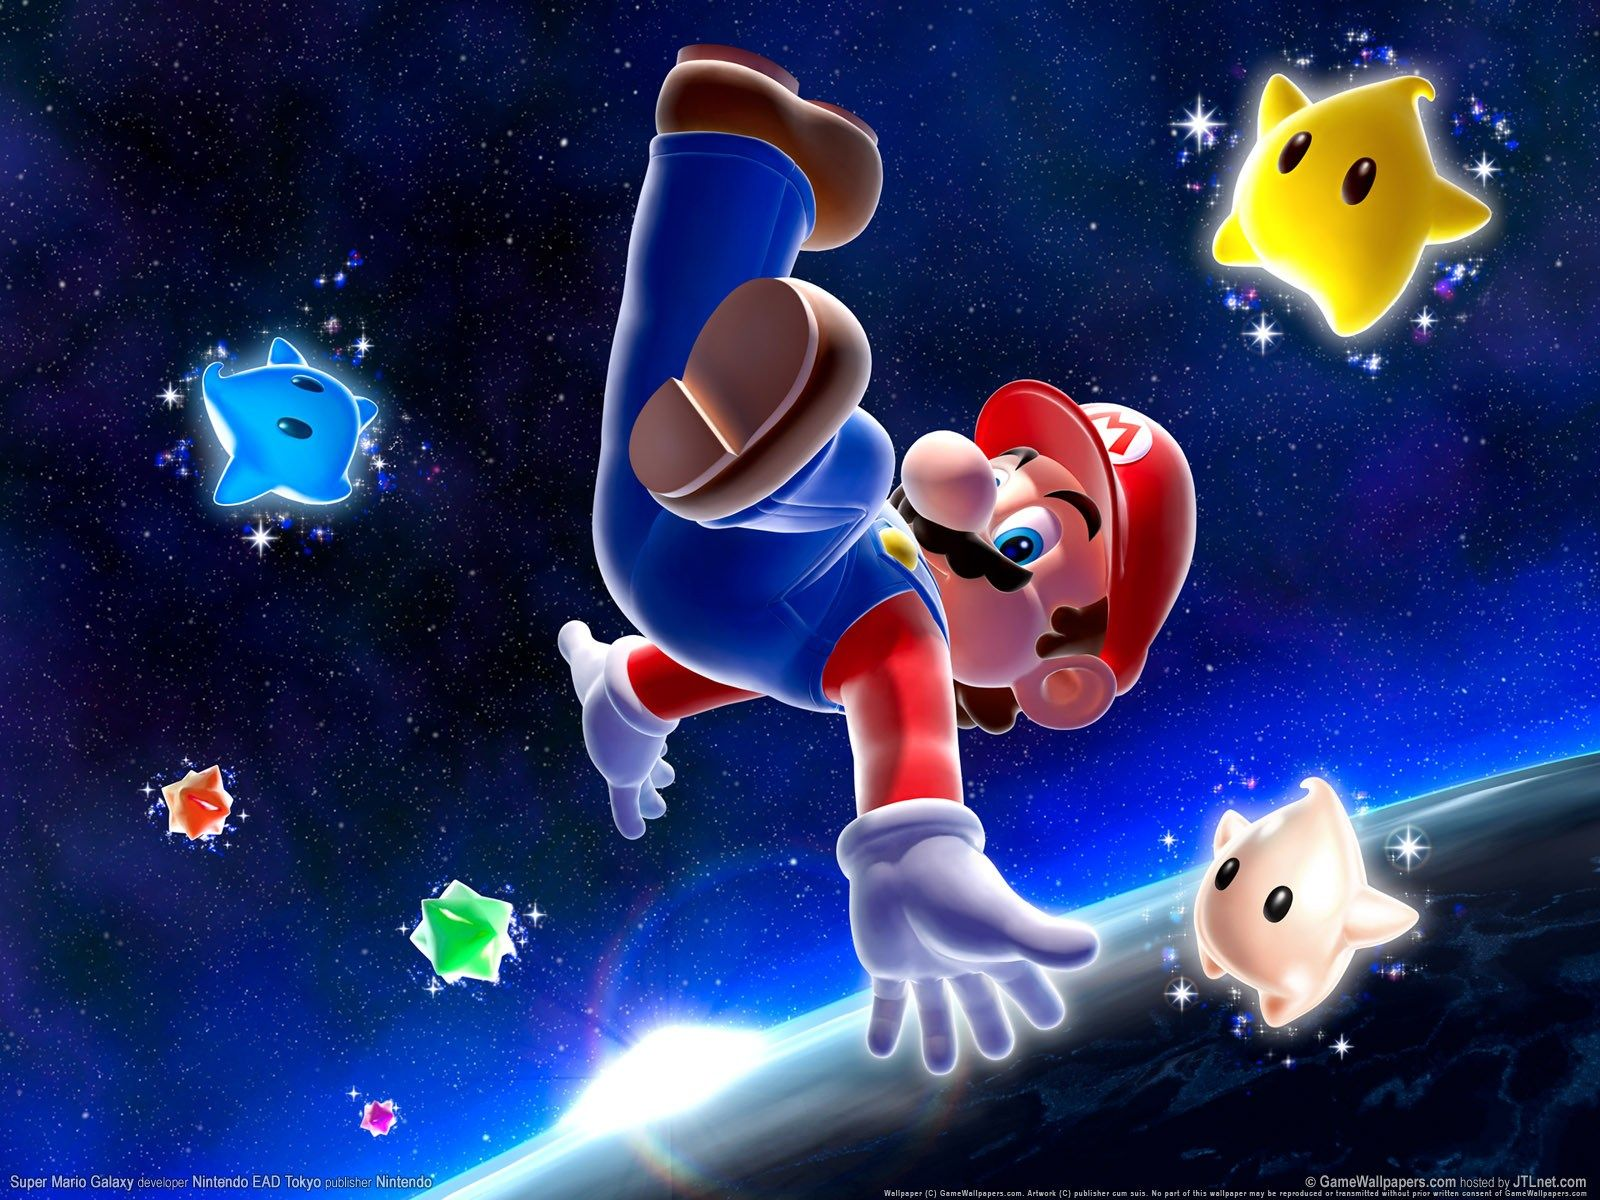 Collecting Star Bits! Super Mario Galaxy